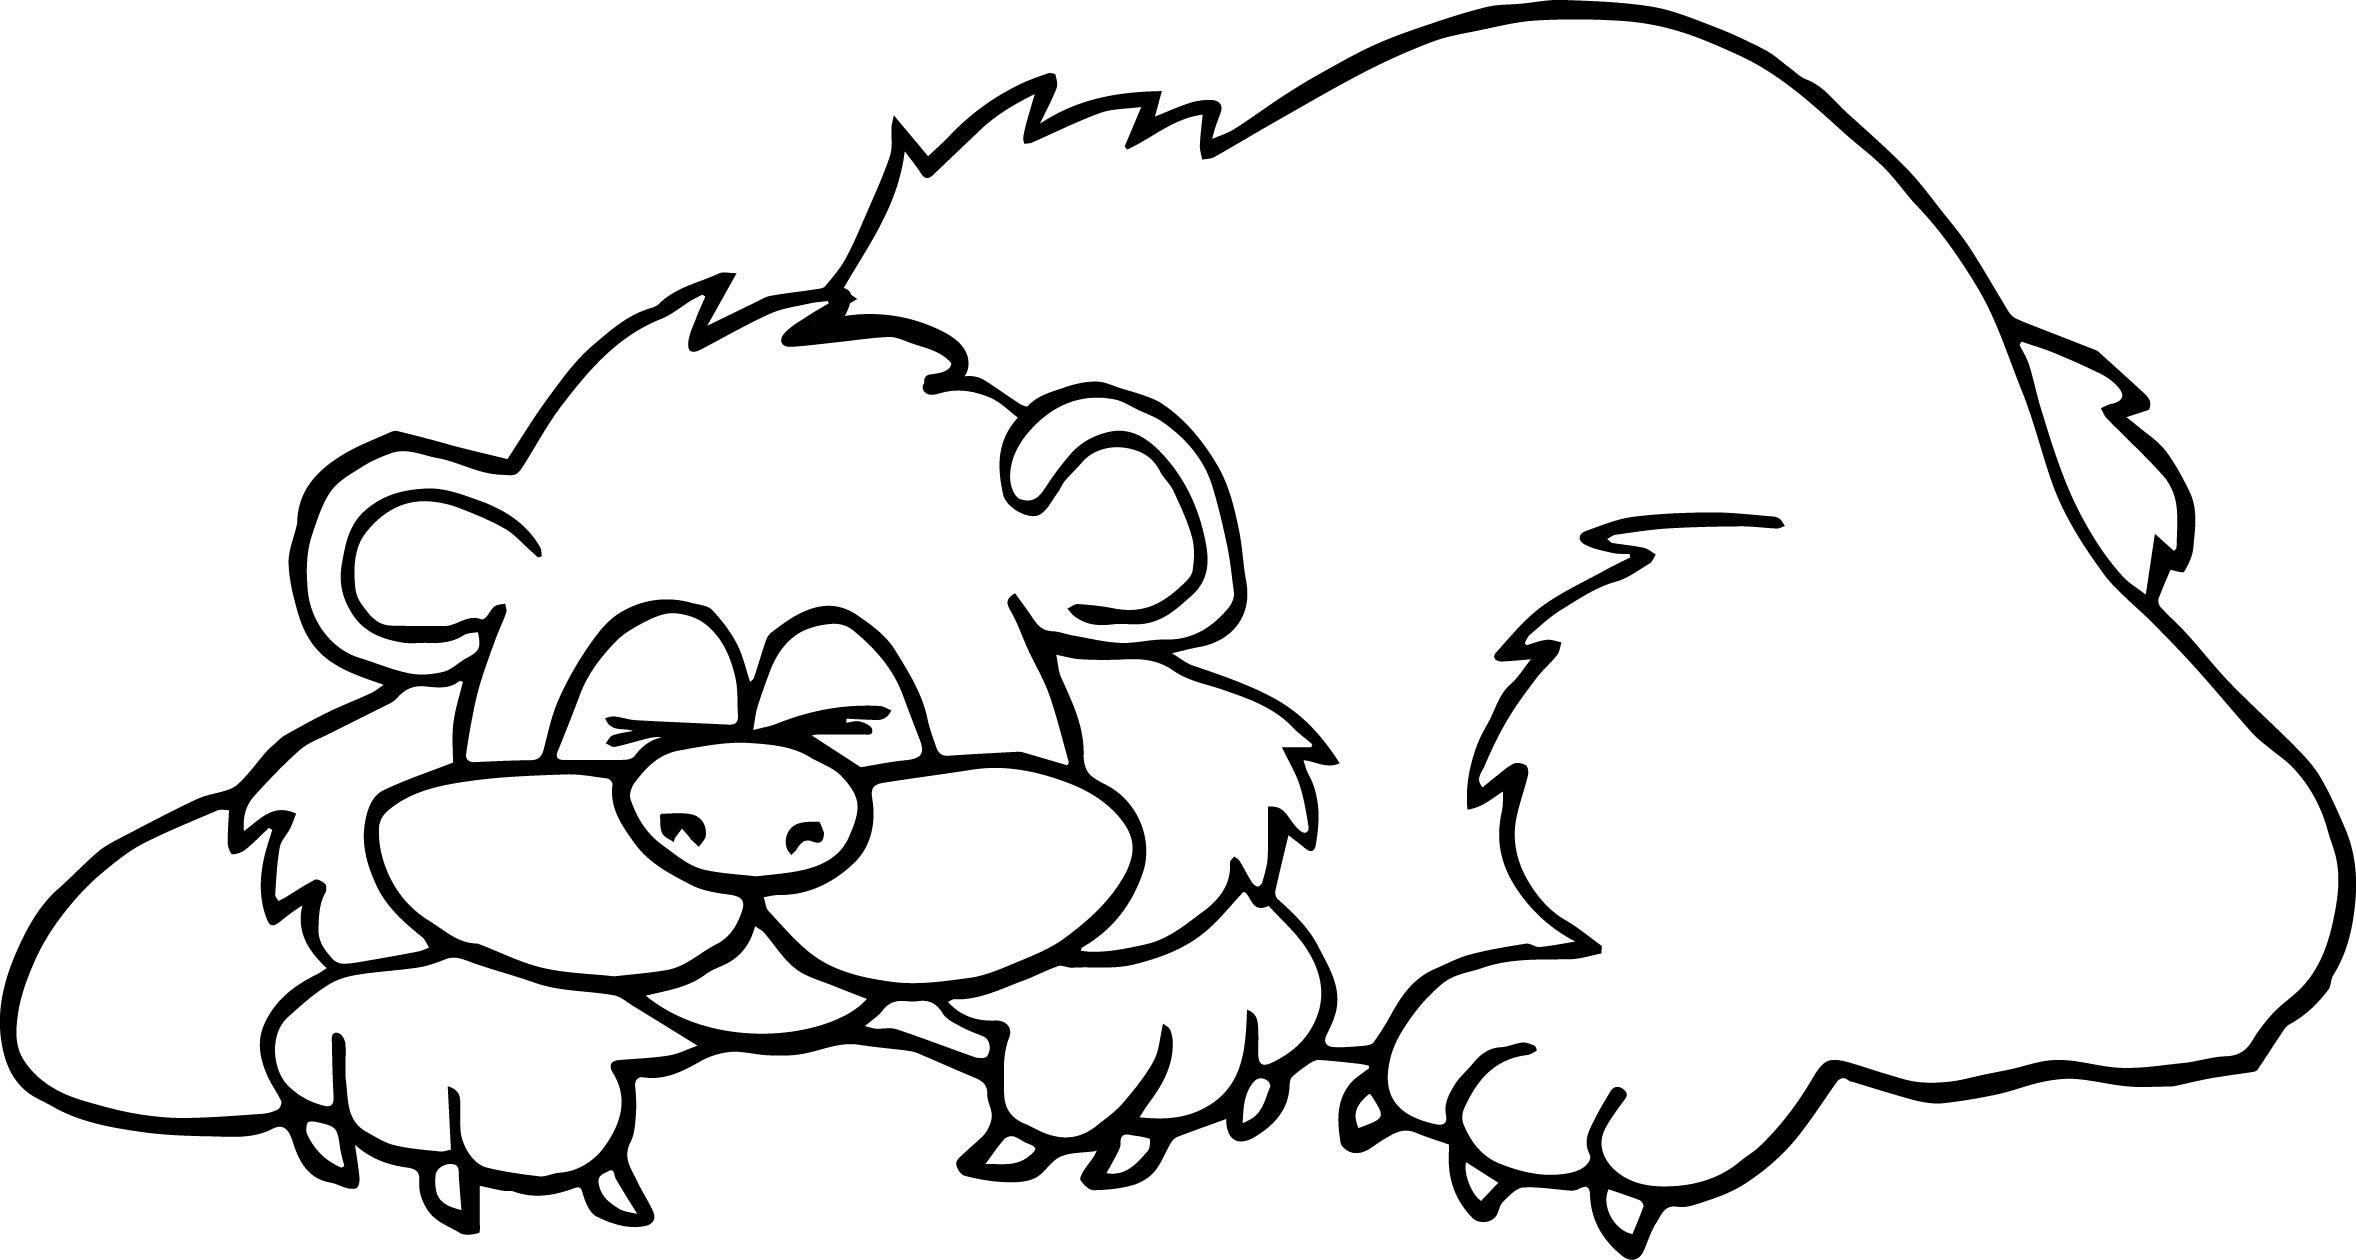 Hibernating Animals Coloring Pages At Getcolorings